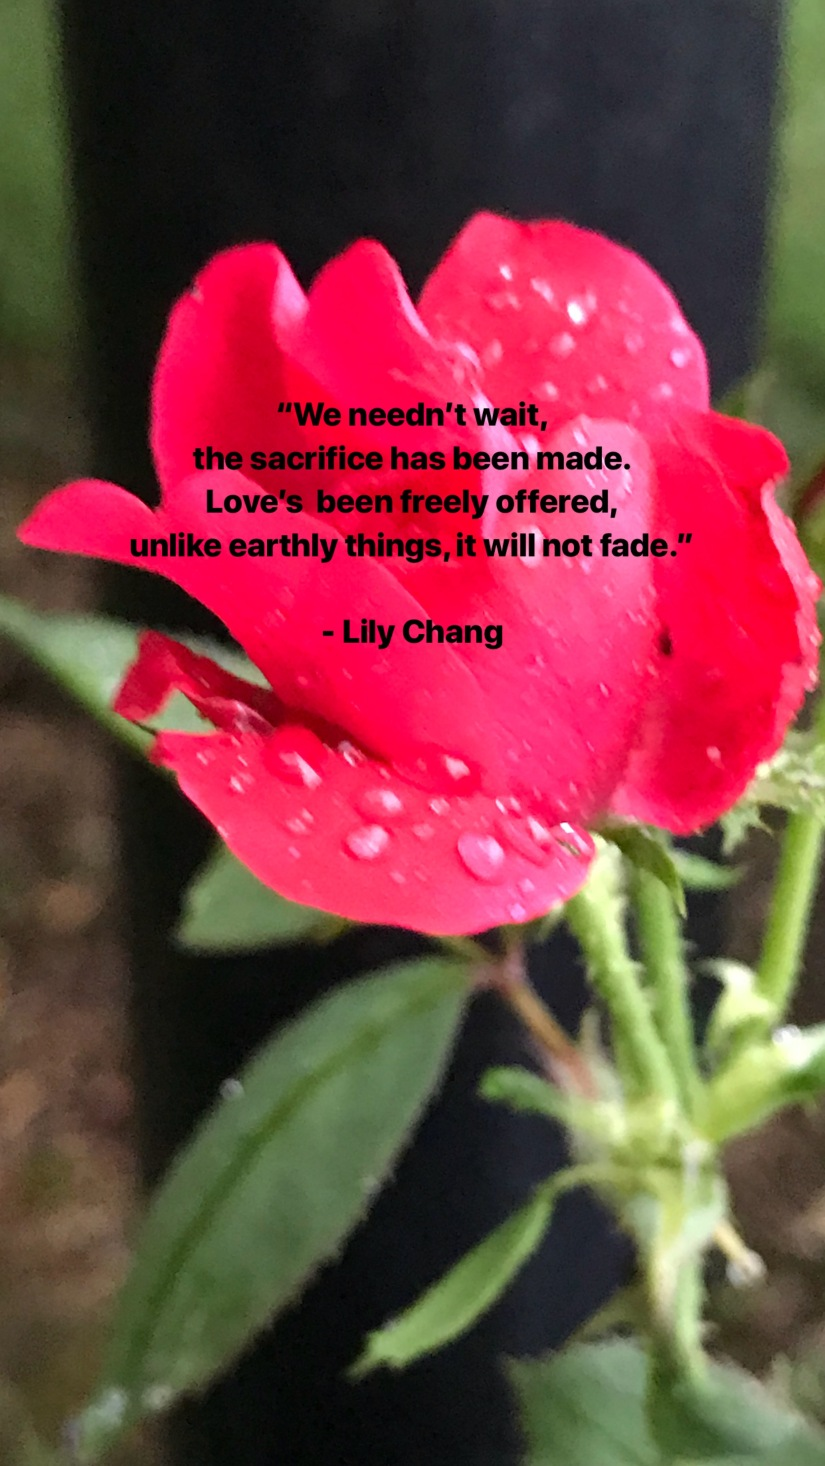 2018July8LilyChangLoveQuote